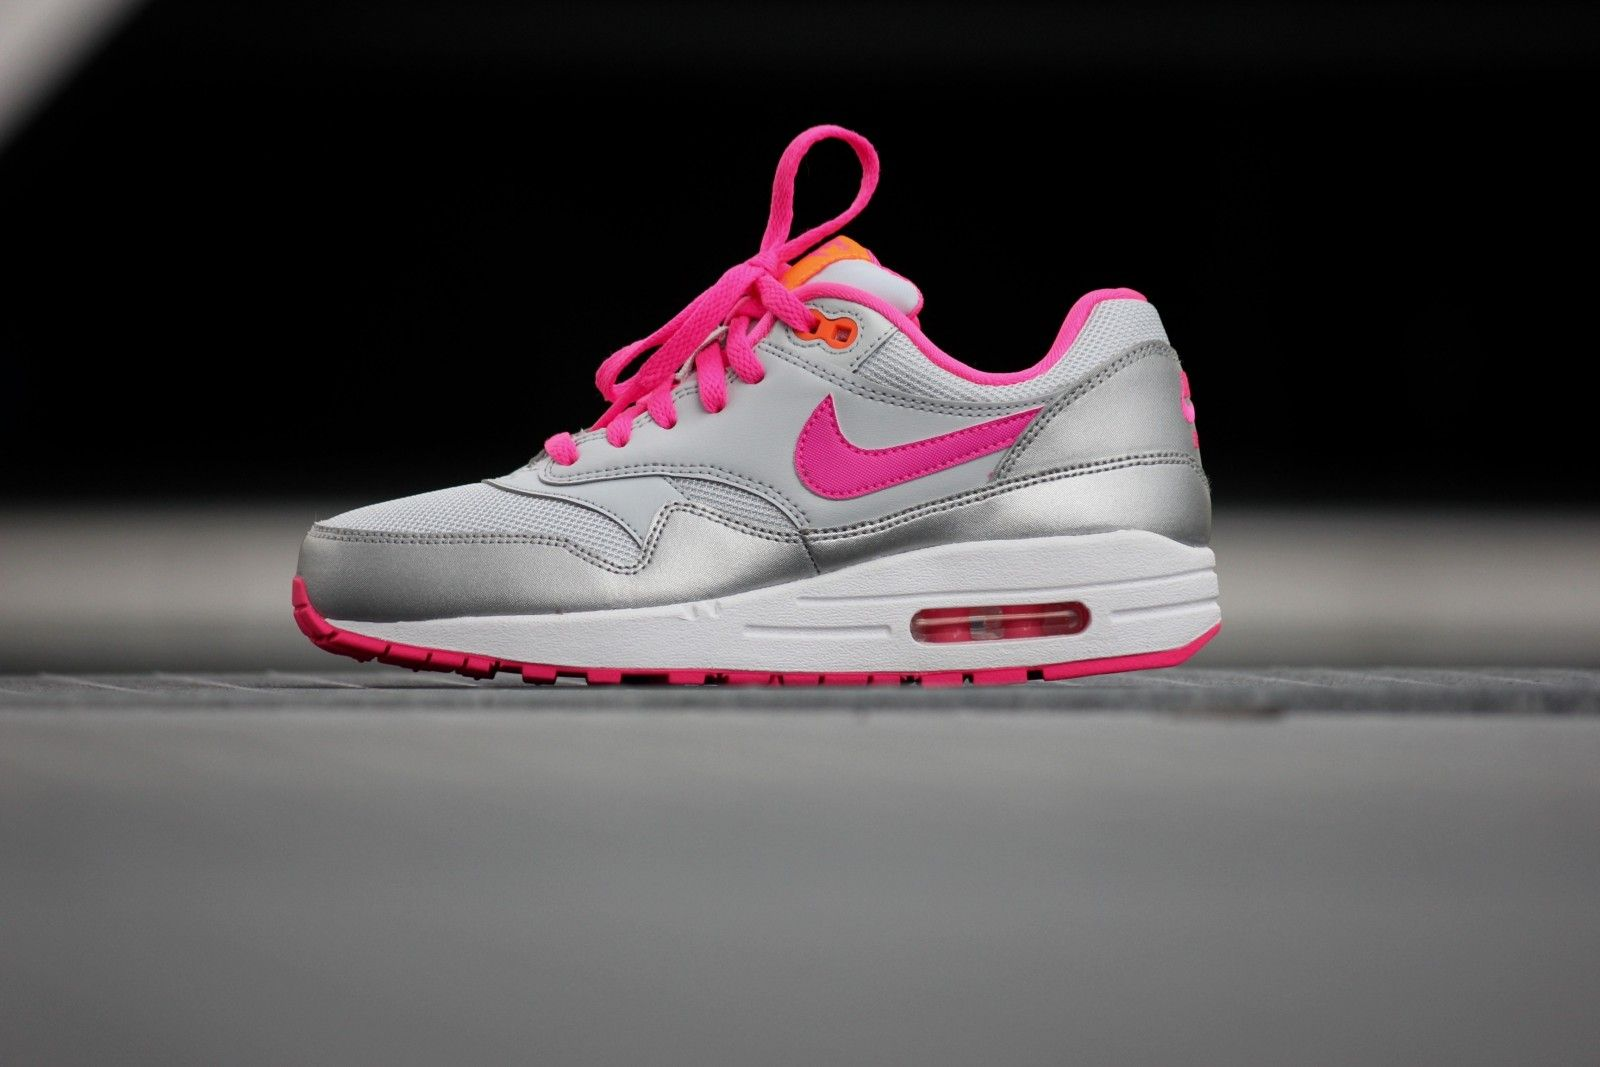 premium selection 7b96a eeeb4 Nike Air max 1 GS Pure Platinum Pink - 653653-005